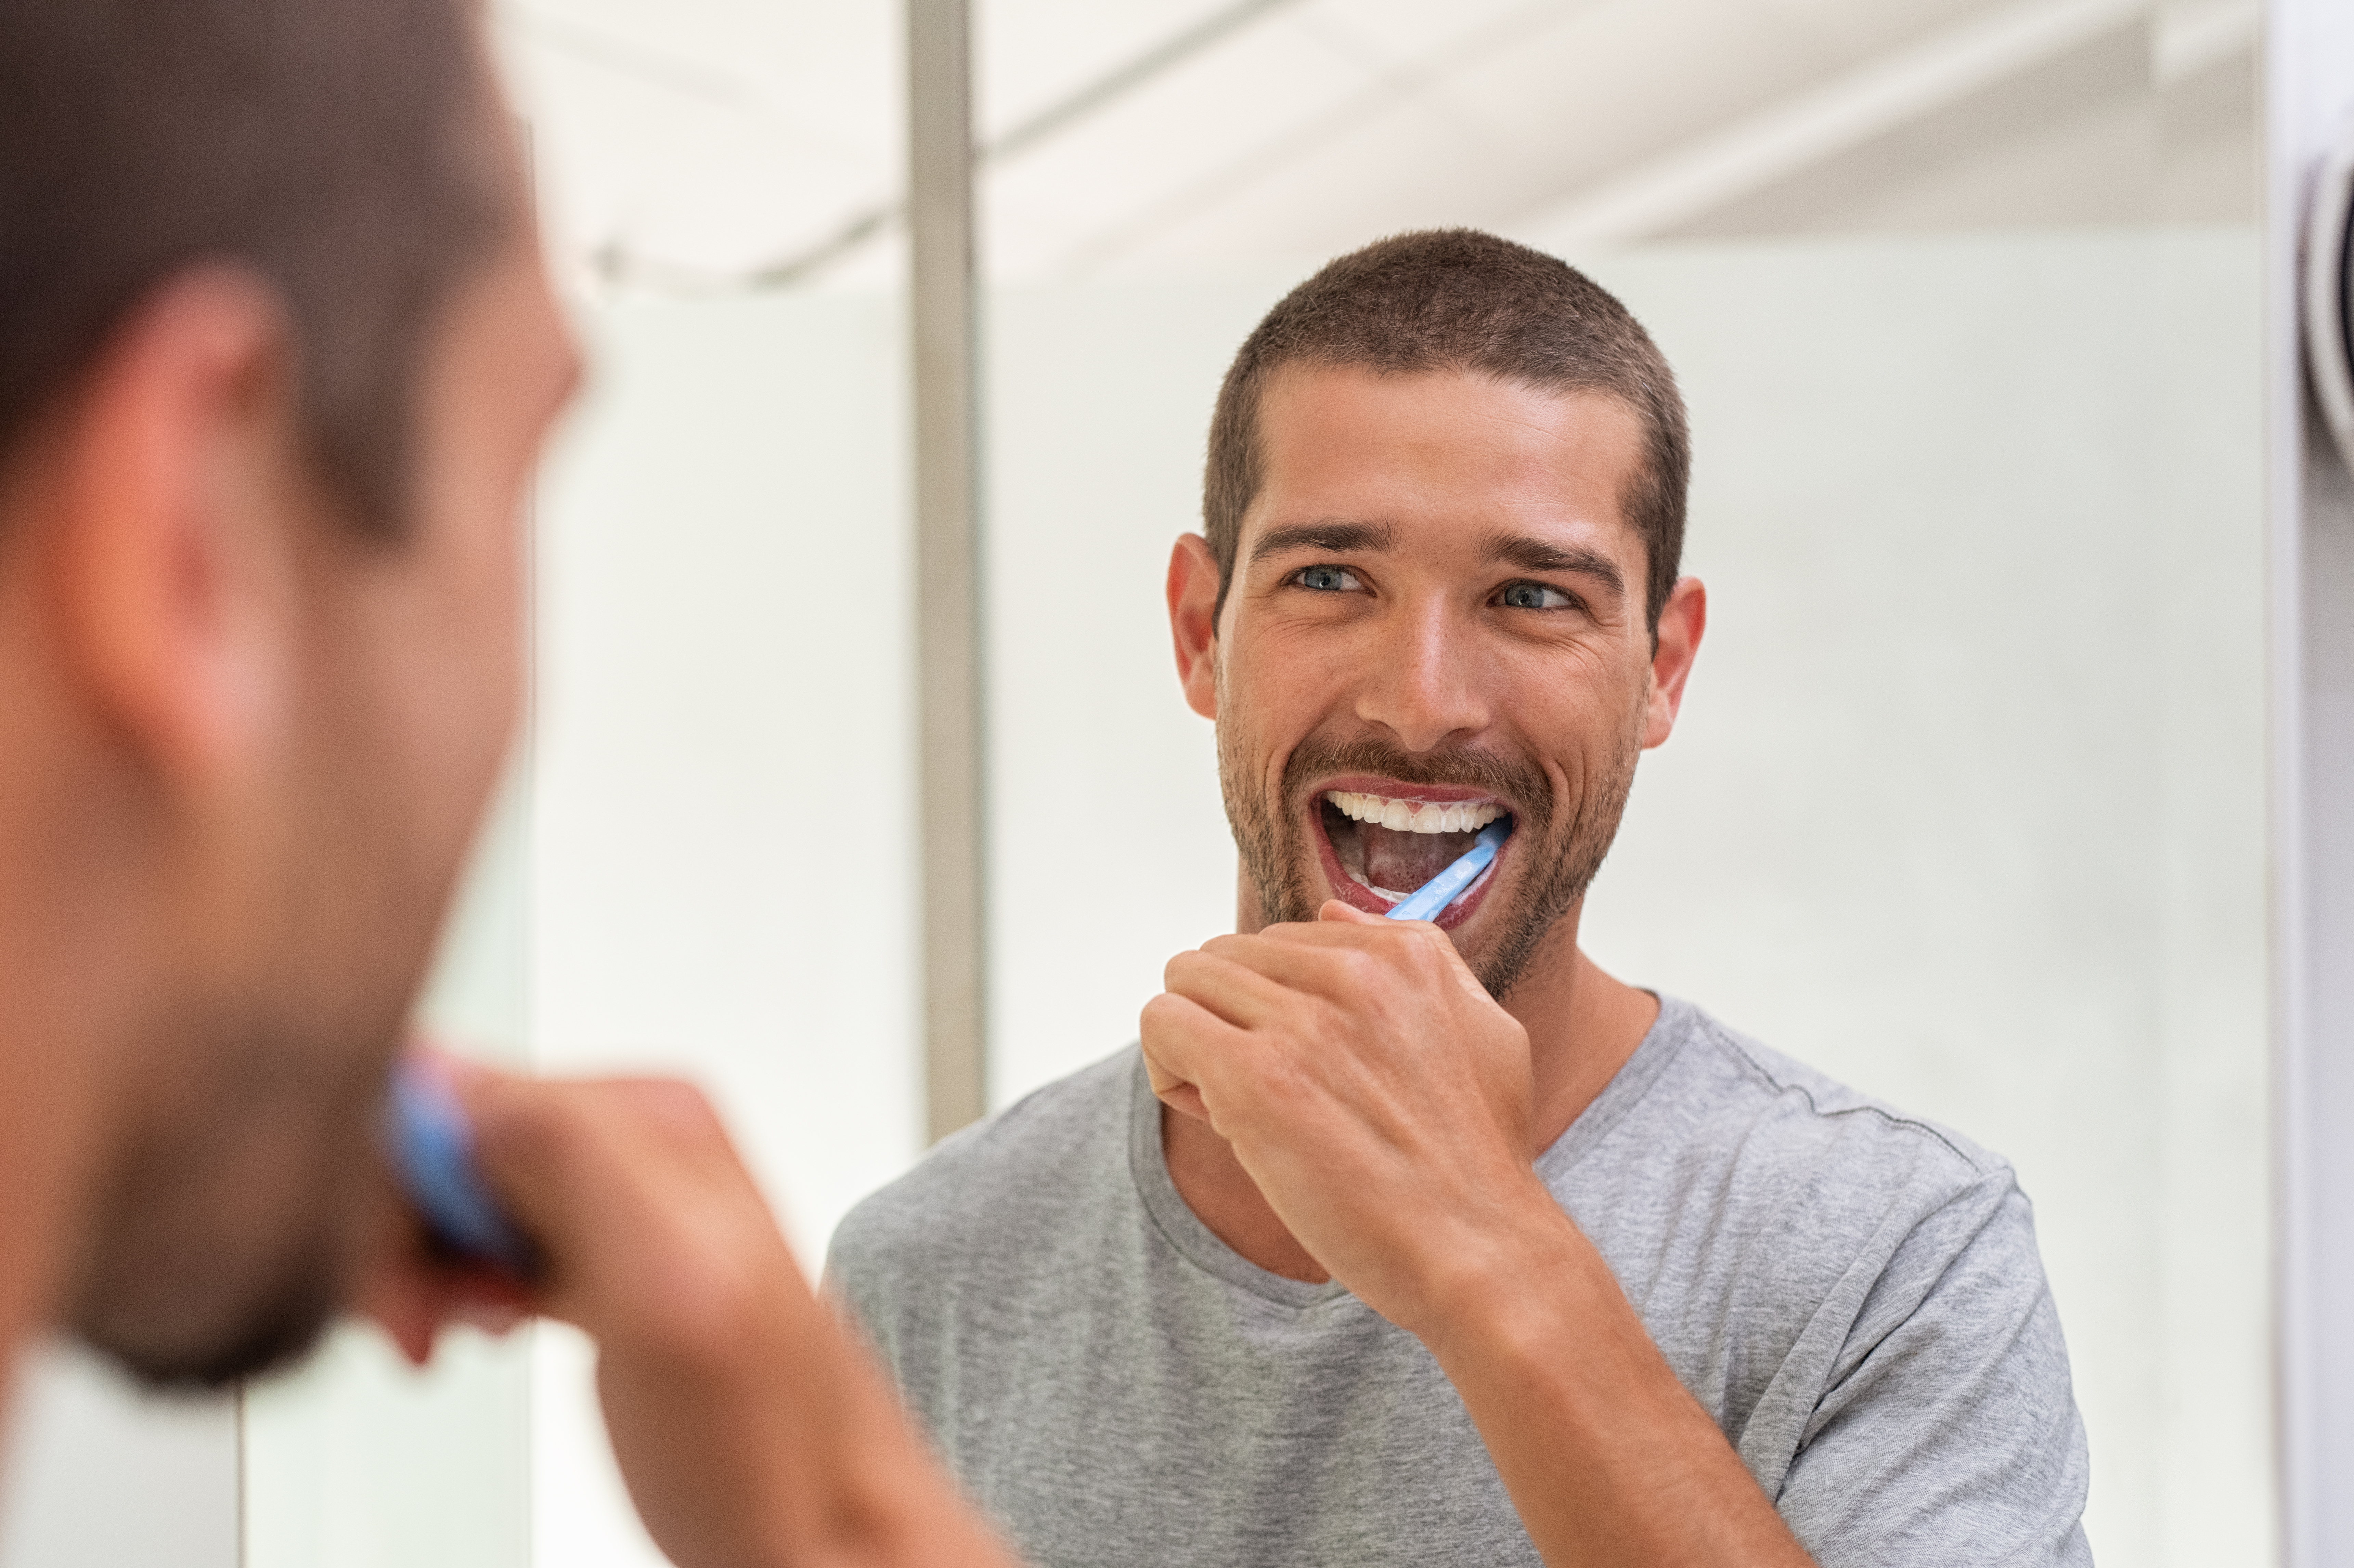 He wouldn't be smiling if he used that toothpaste as lube, though. (Stock photo via Elements Envato)